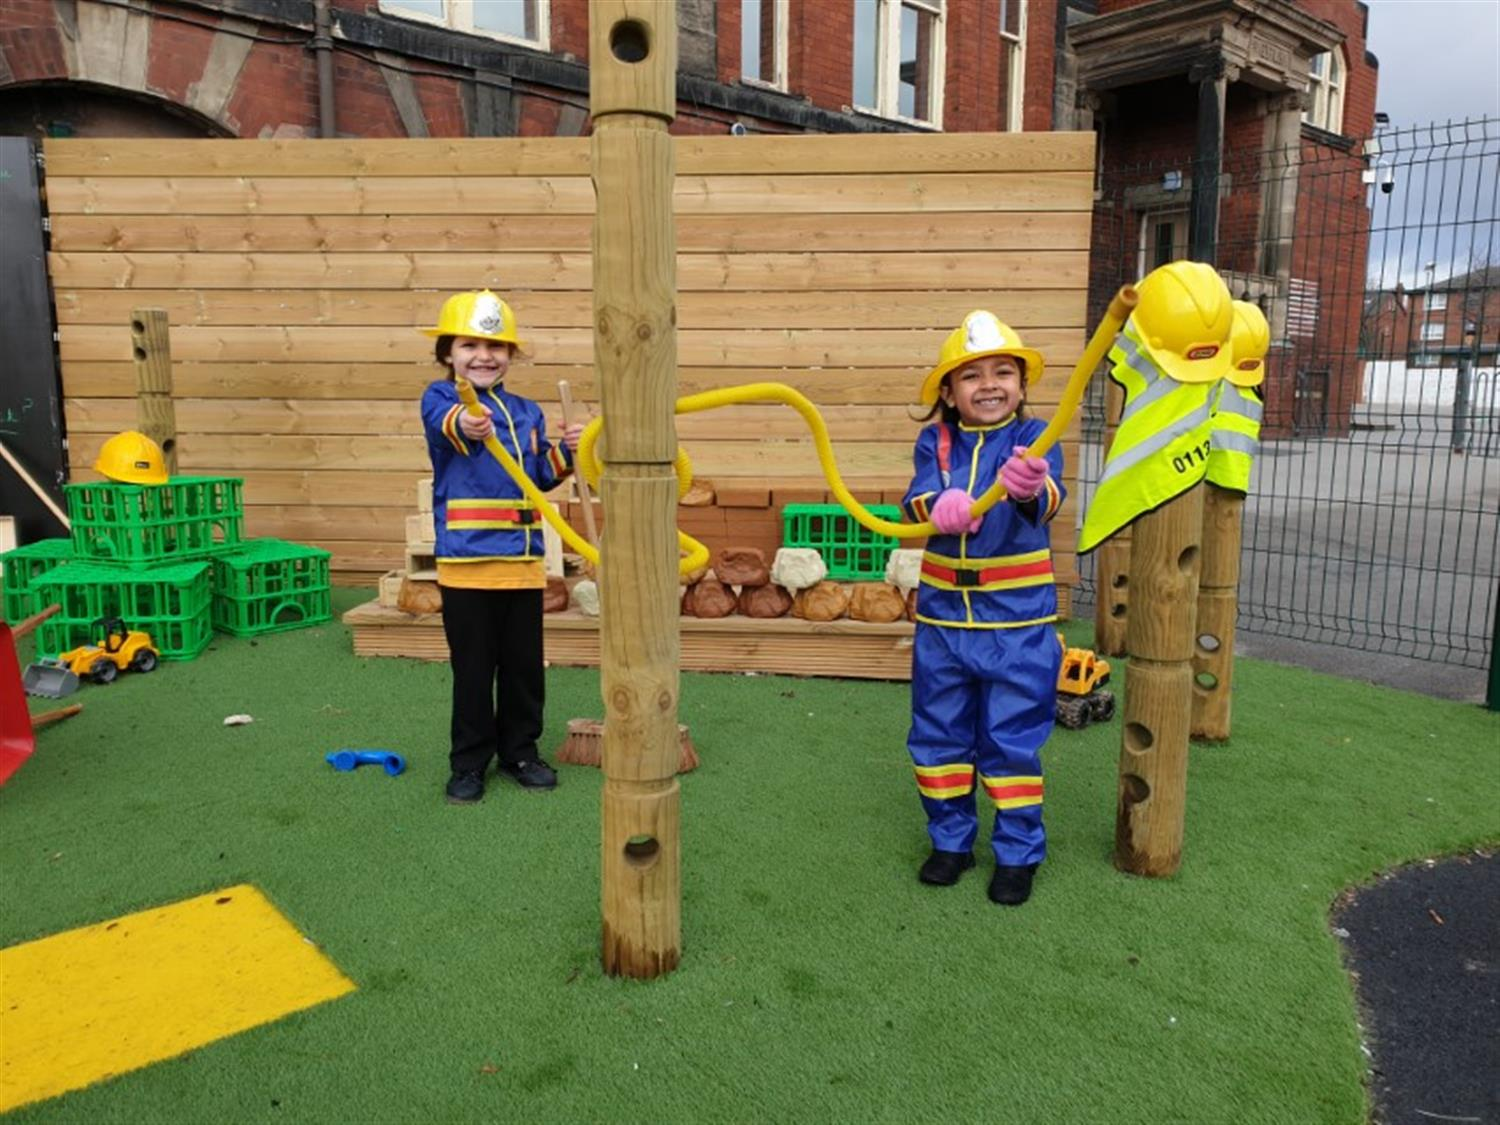 School Playground Equipment for EYFS